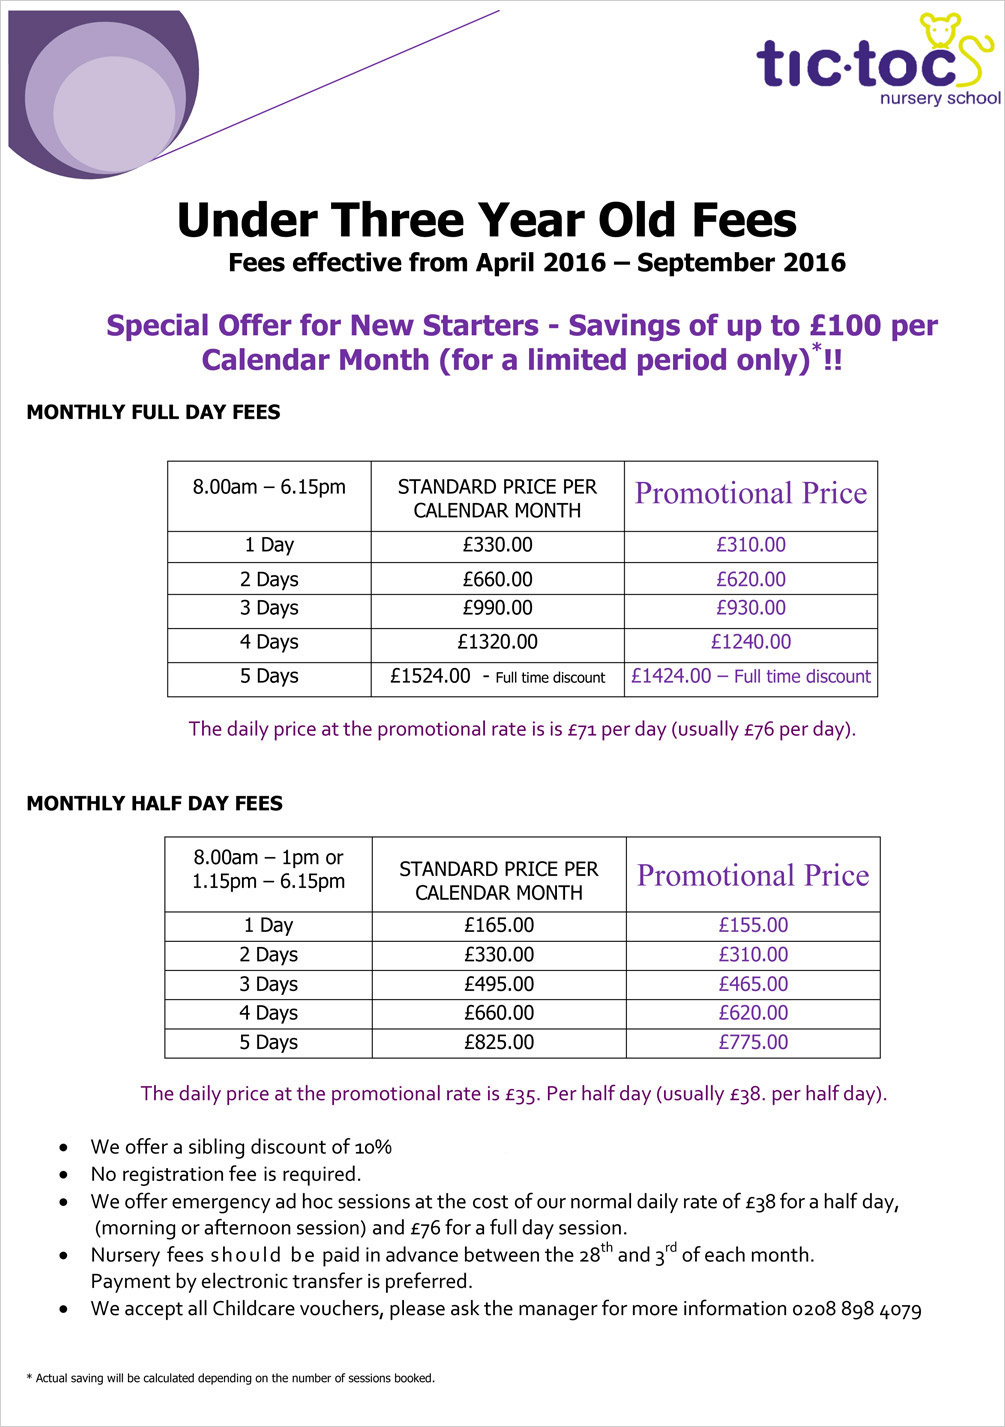 Tic Toc Nursery School - Under three year old fees April 2016 – Sept 2016